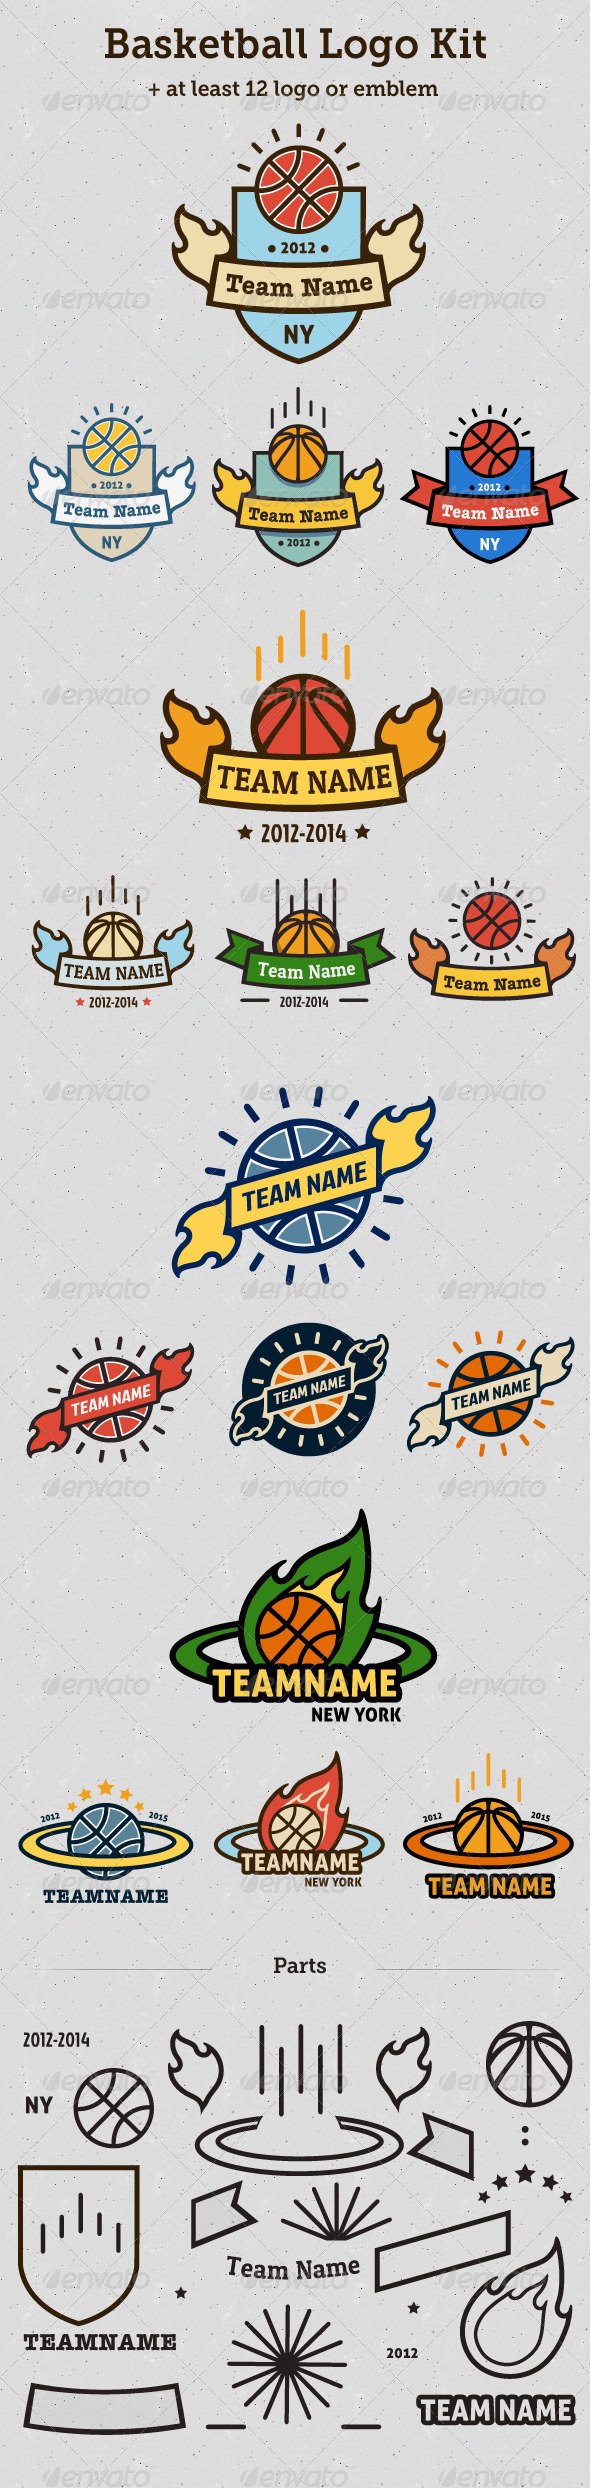 Basketball Logo Kit